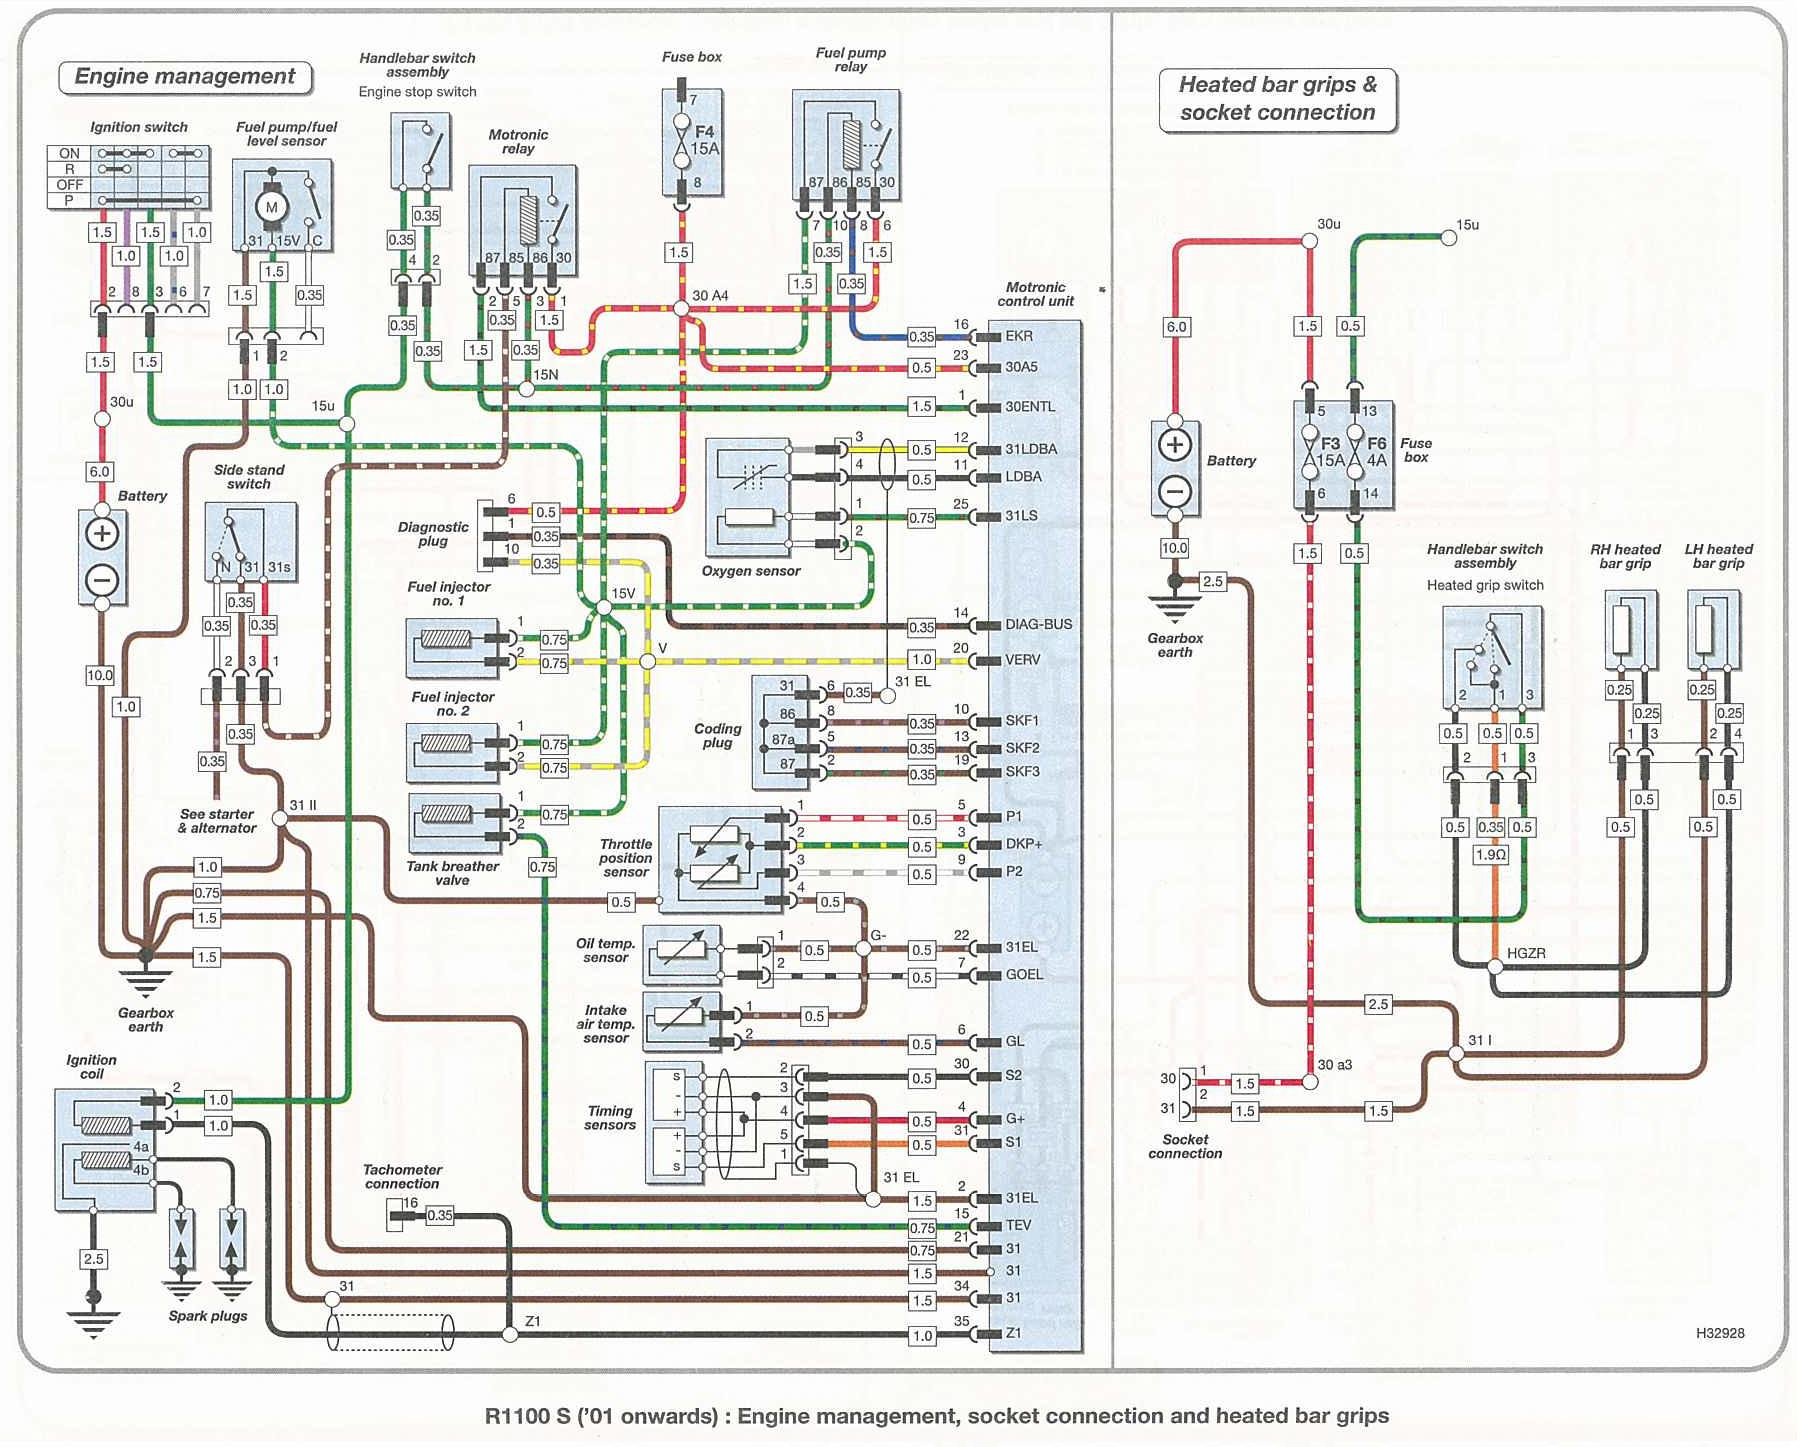 wiring07 bmw r1100s wiring diagrams bmw wire diagram at mifinder.co